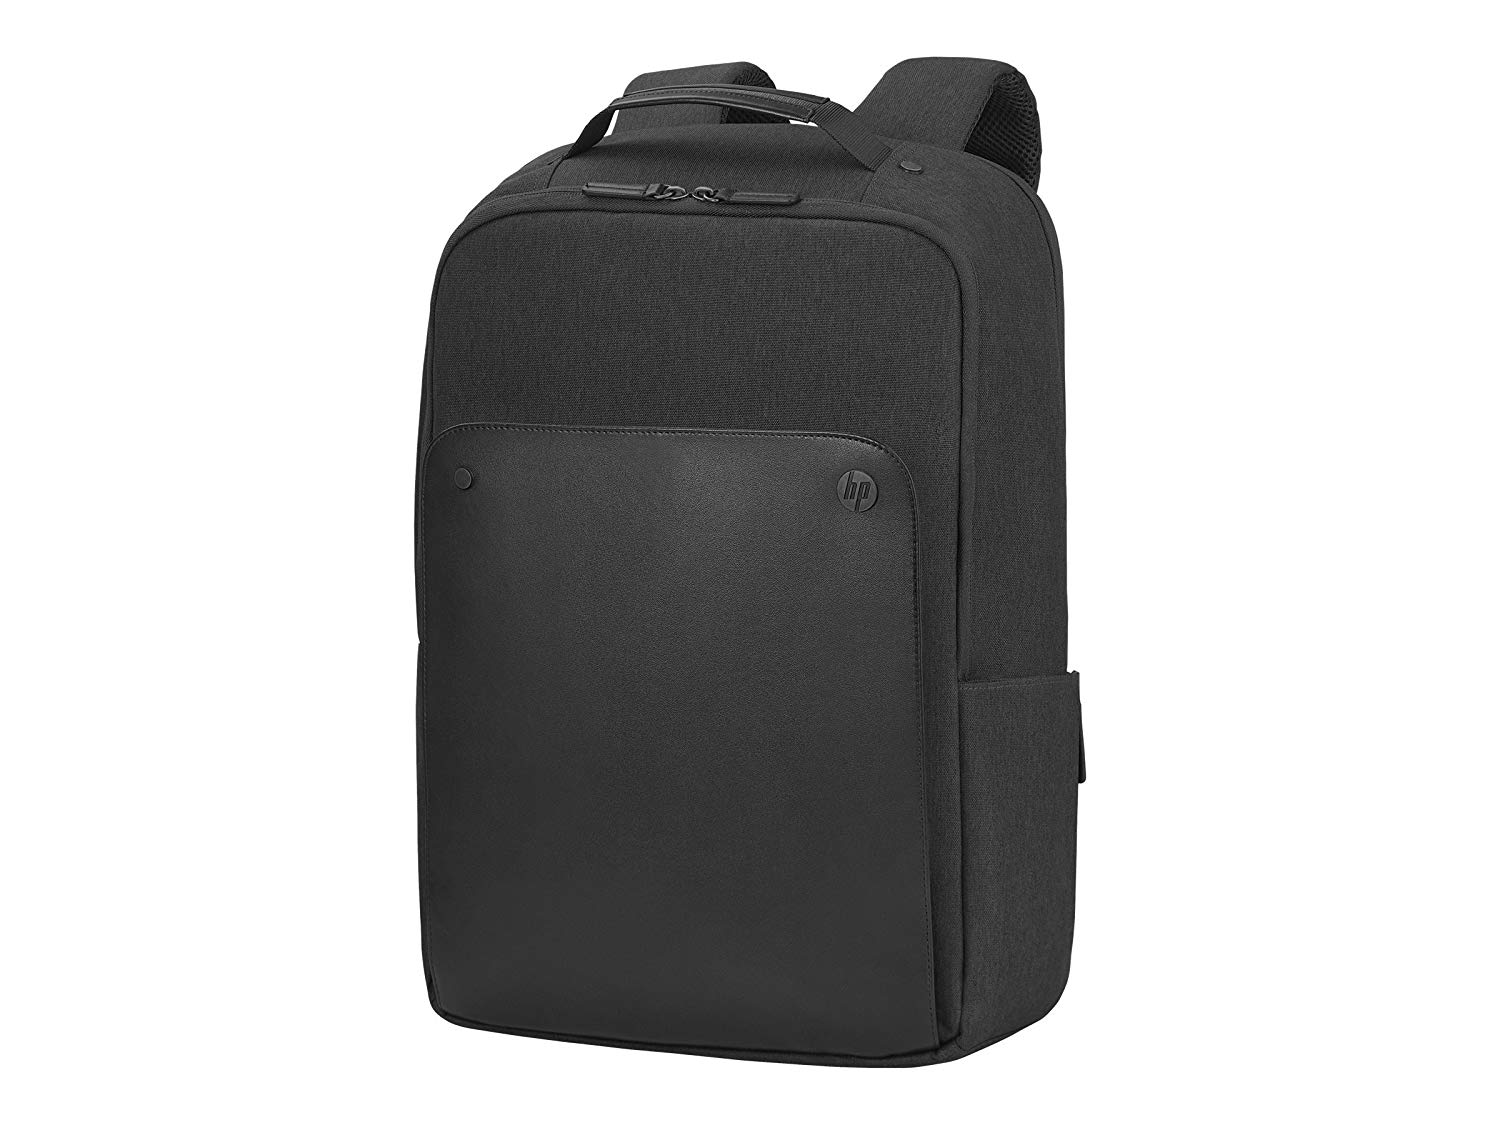 HP Rucksack Backpack amazon